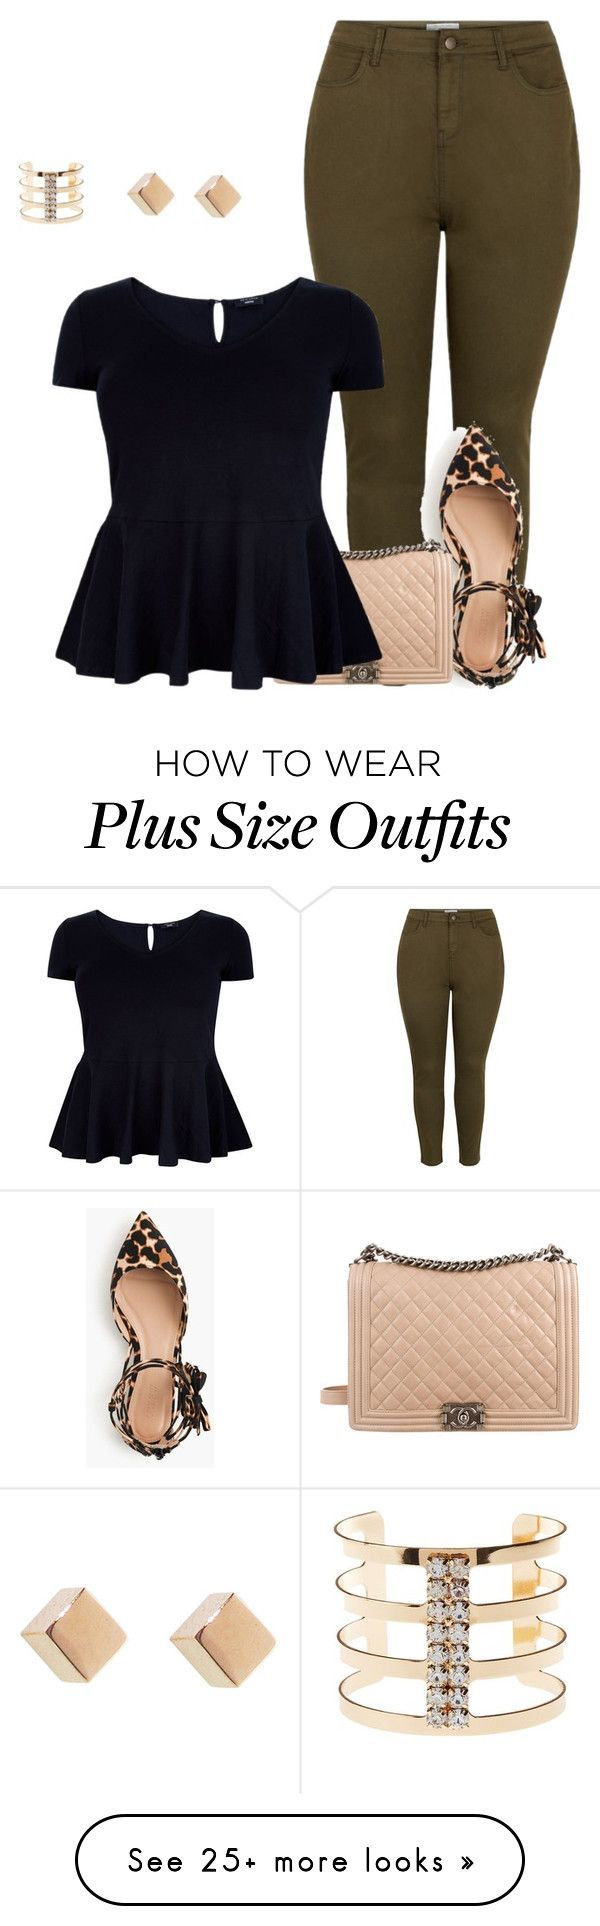 awesome Plus Size Sets by http://www.globalfashionista.xyz/plus-size-fashion/plus-size-sets-4/